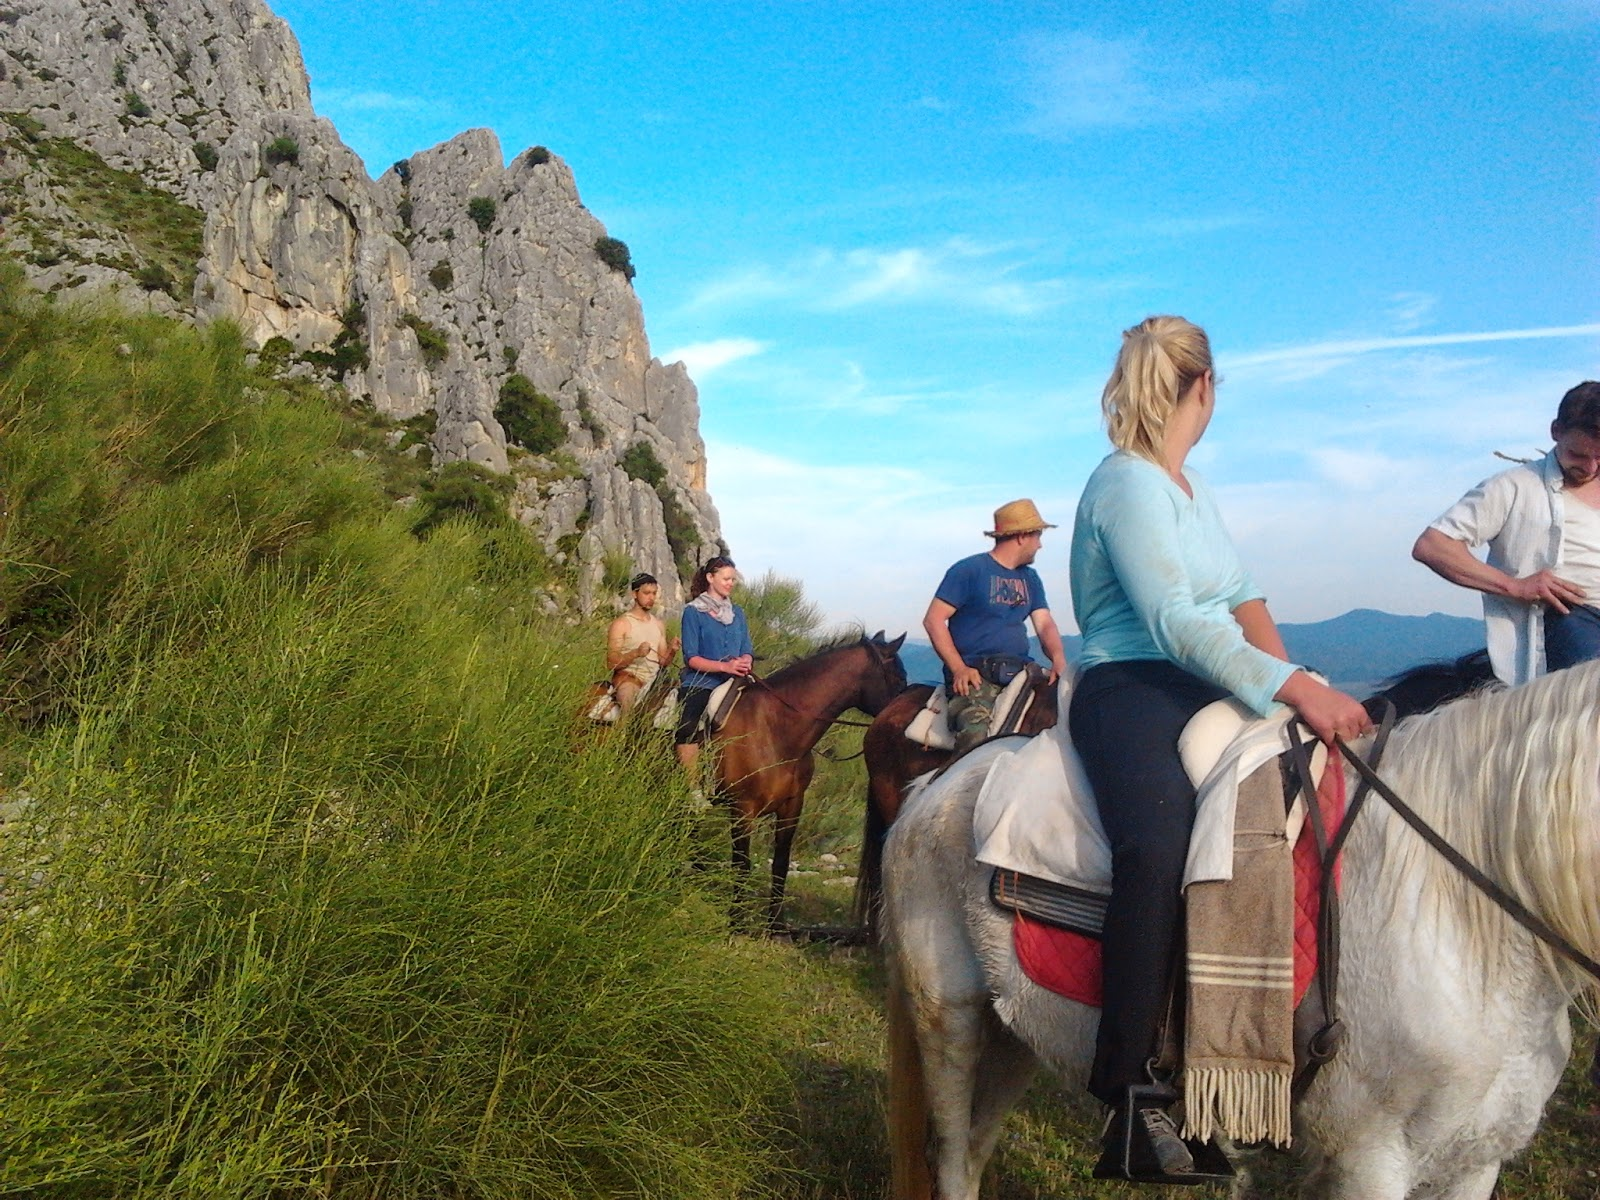 horse riding in spain horse riding holiday destinations europe andalucia spain